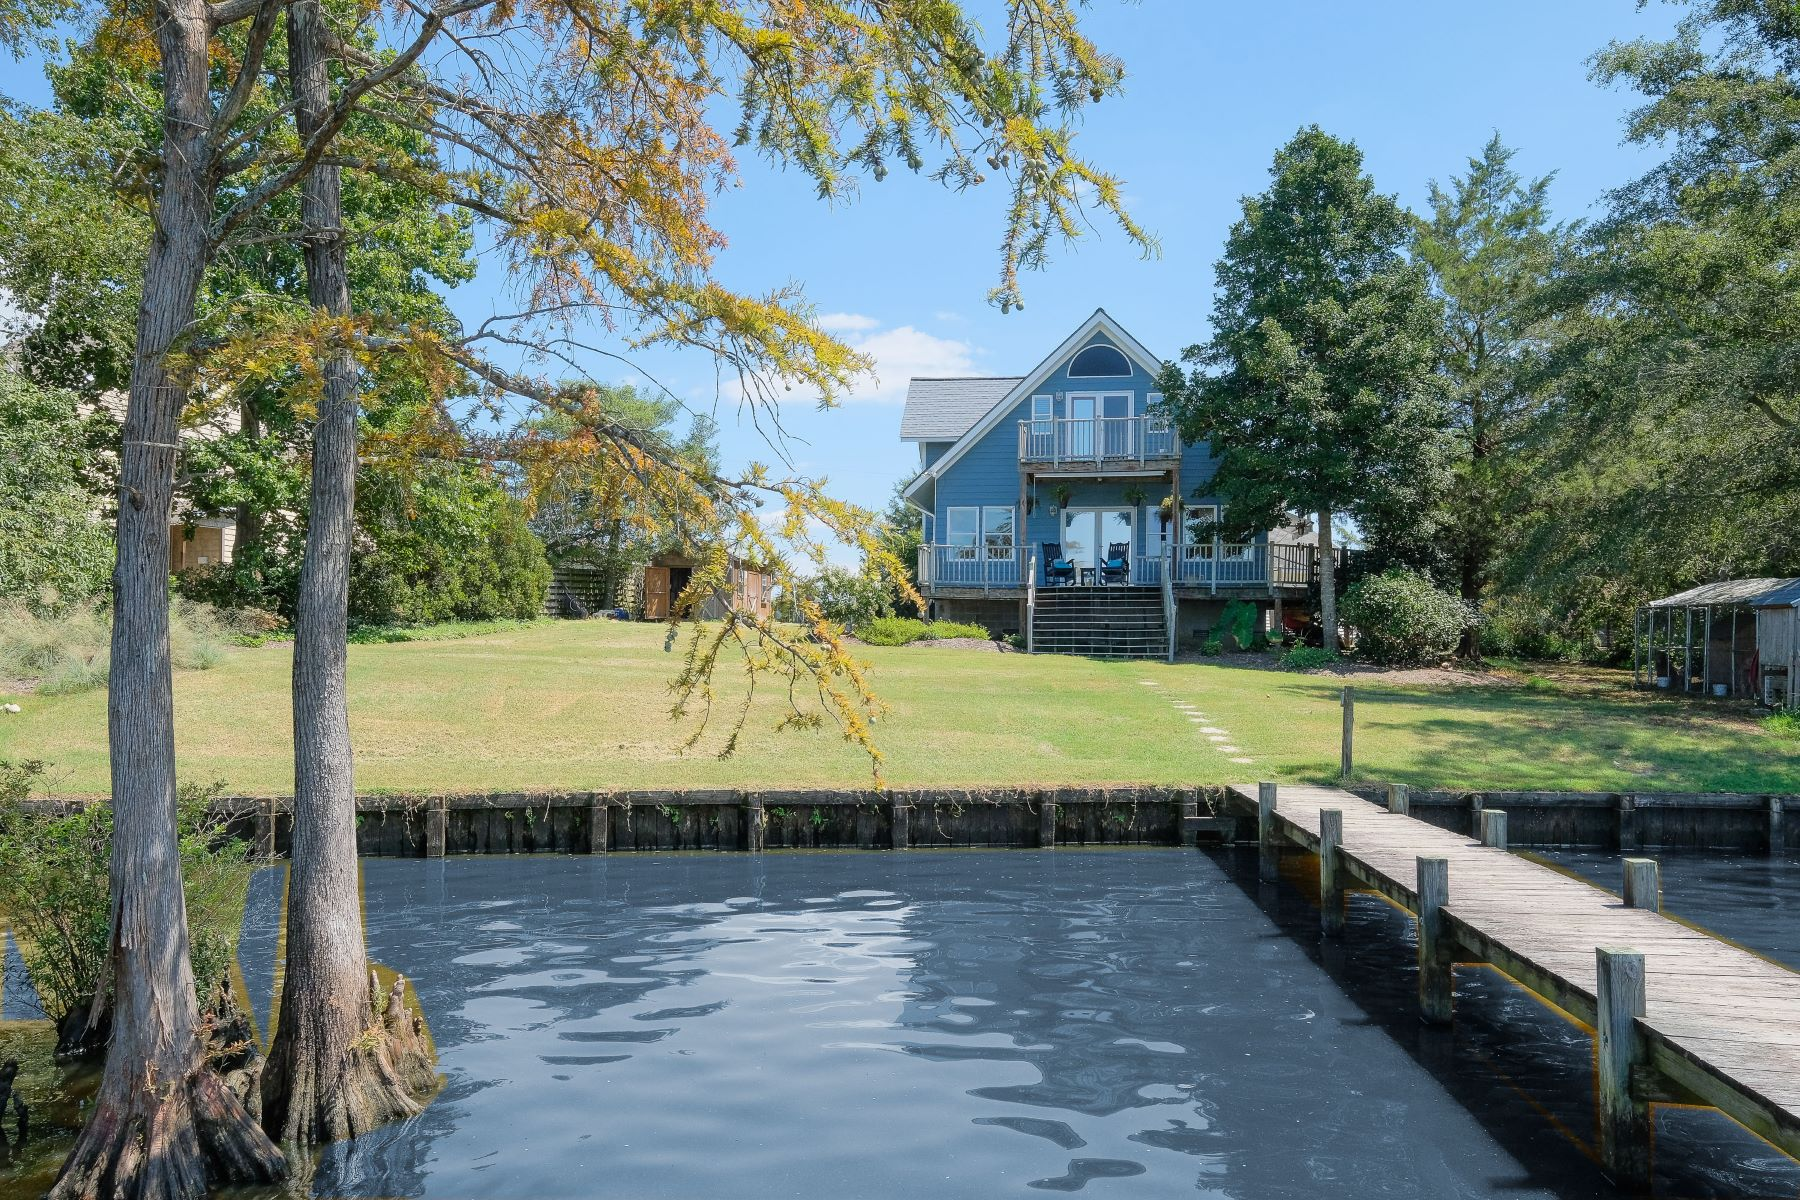 Additional photo for property listing at RIVER BEAUTY 201 River's Edge Lane Edenton, North Carolina 27932 United States